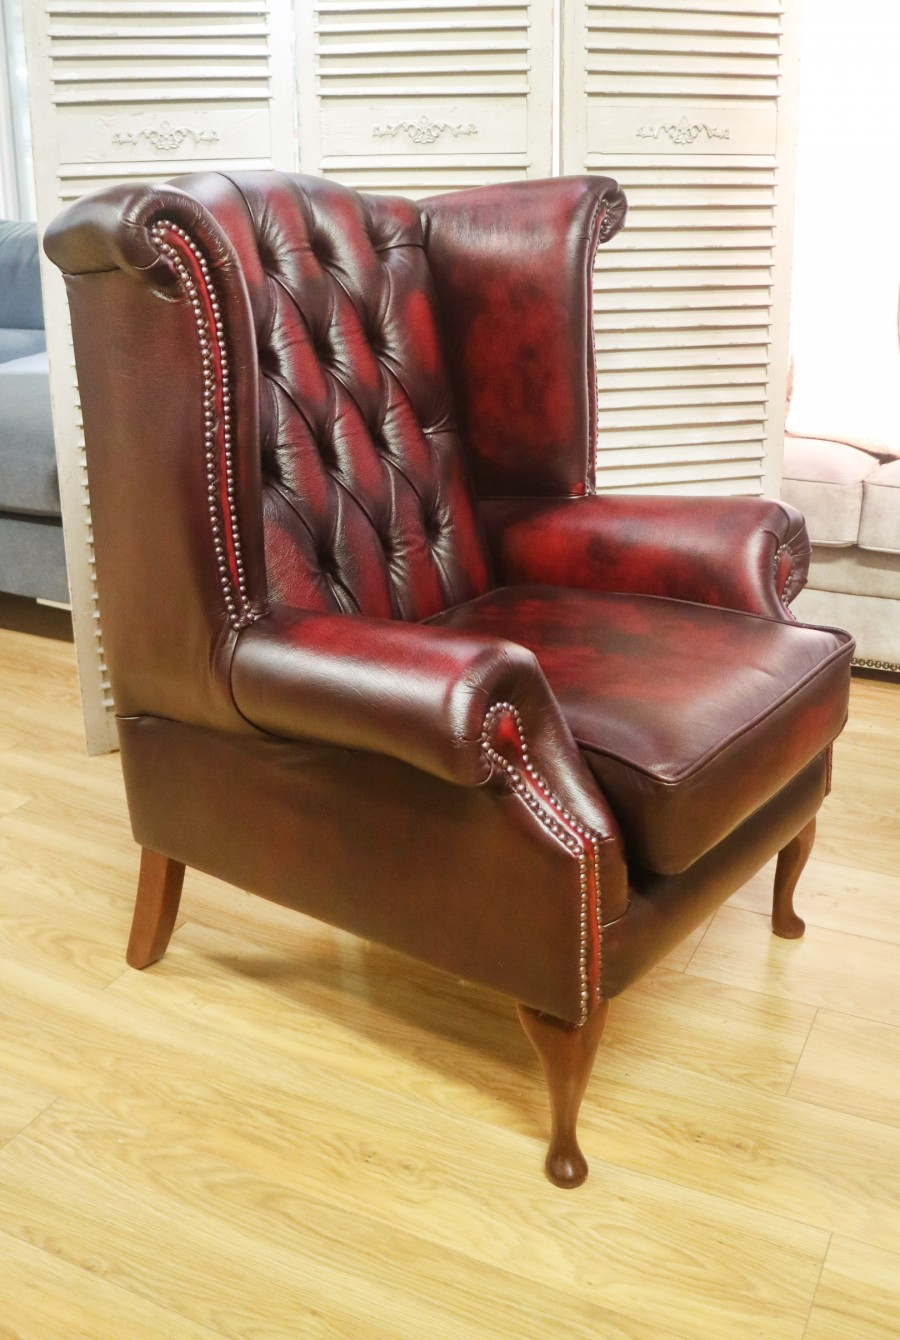 Scroll Wing Chair Chesterfield Leather Armchair - Scroll Wing Chair - Antique Red